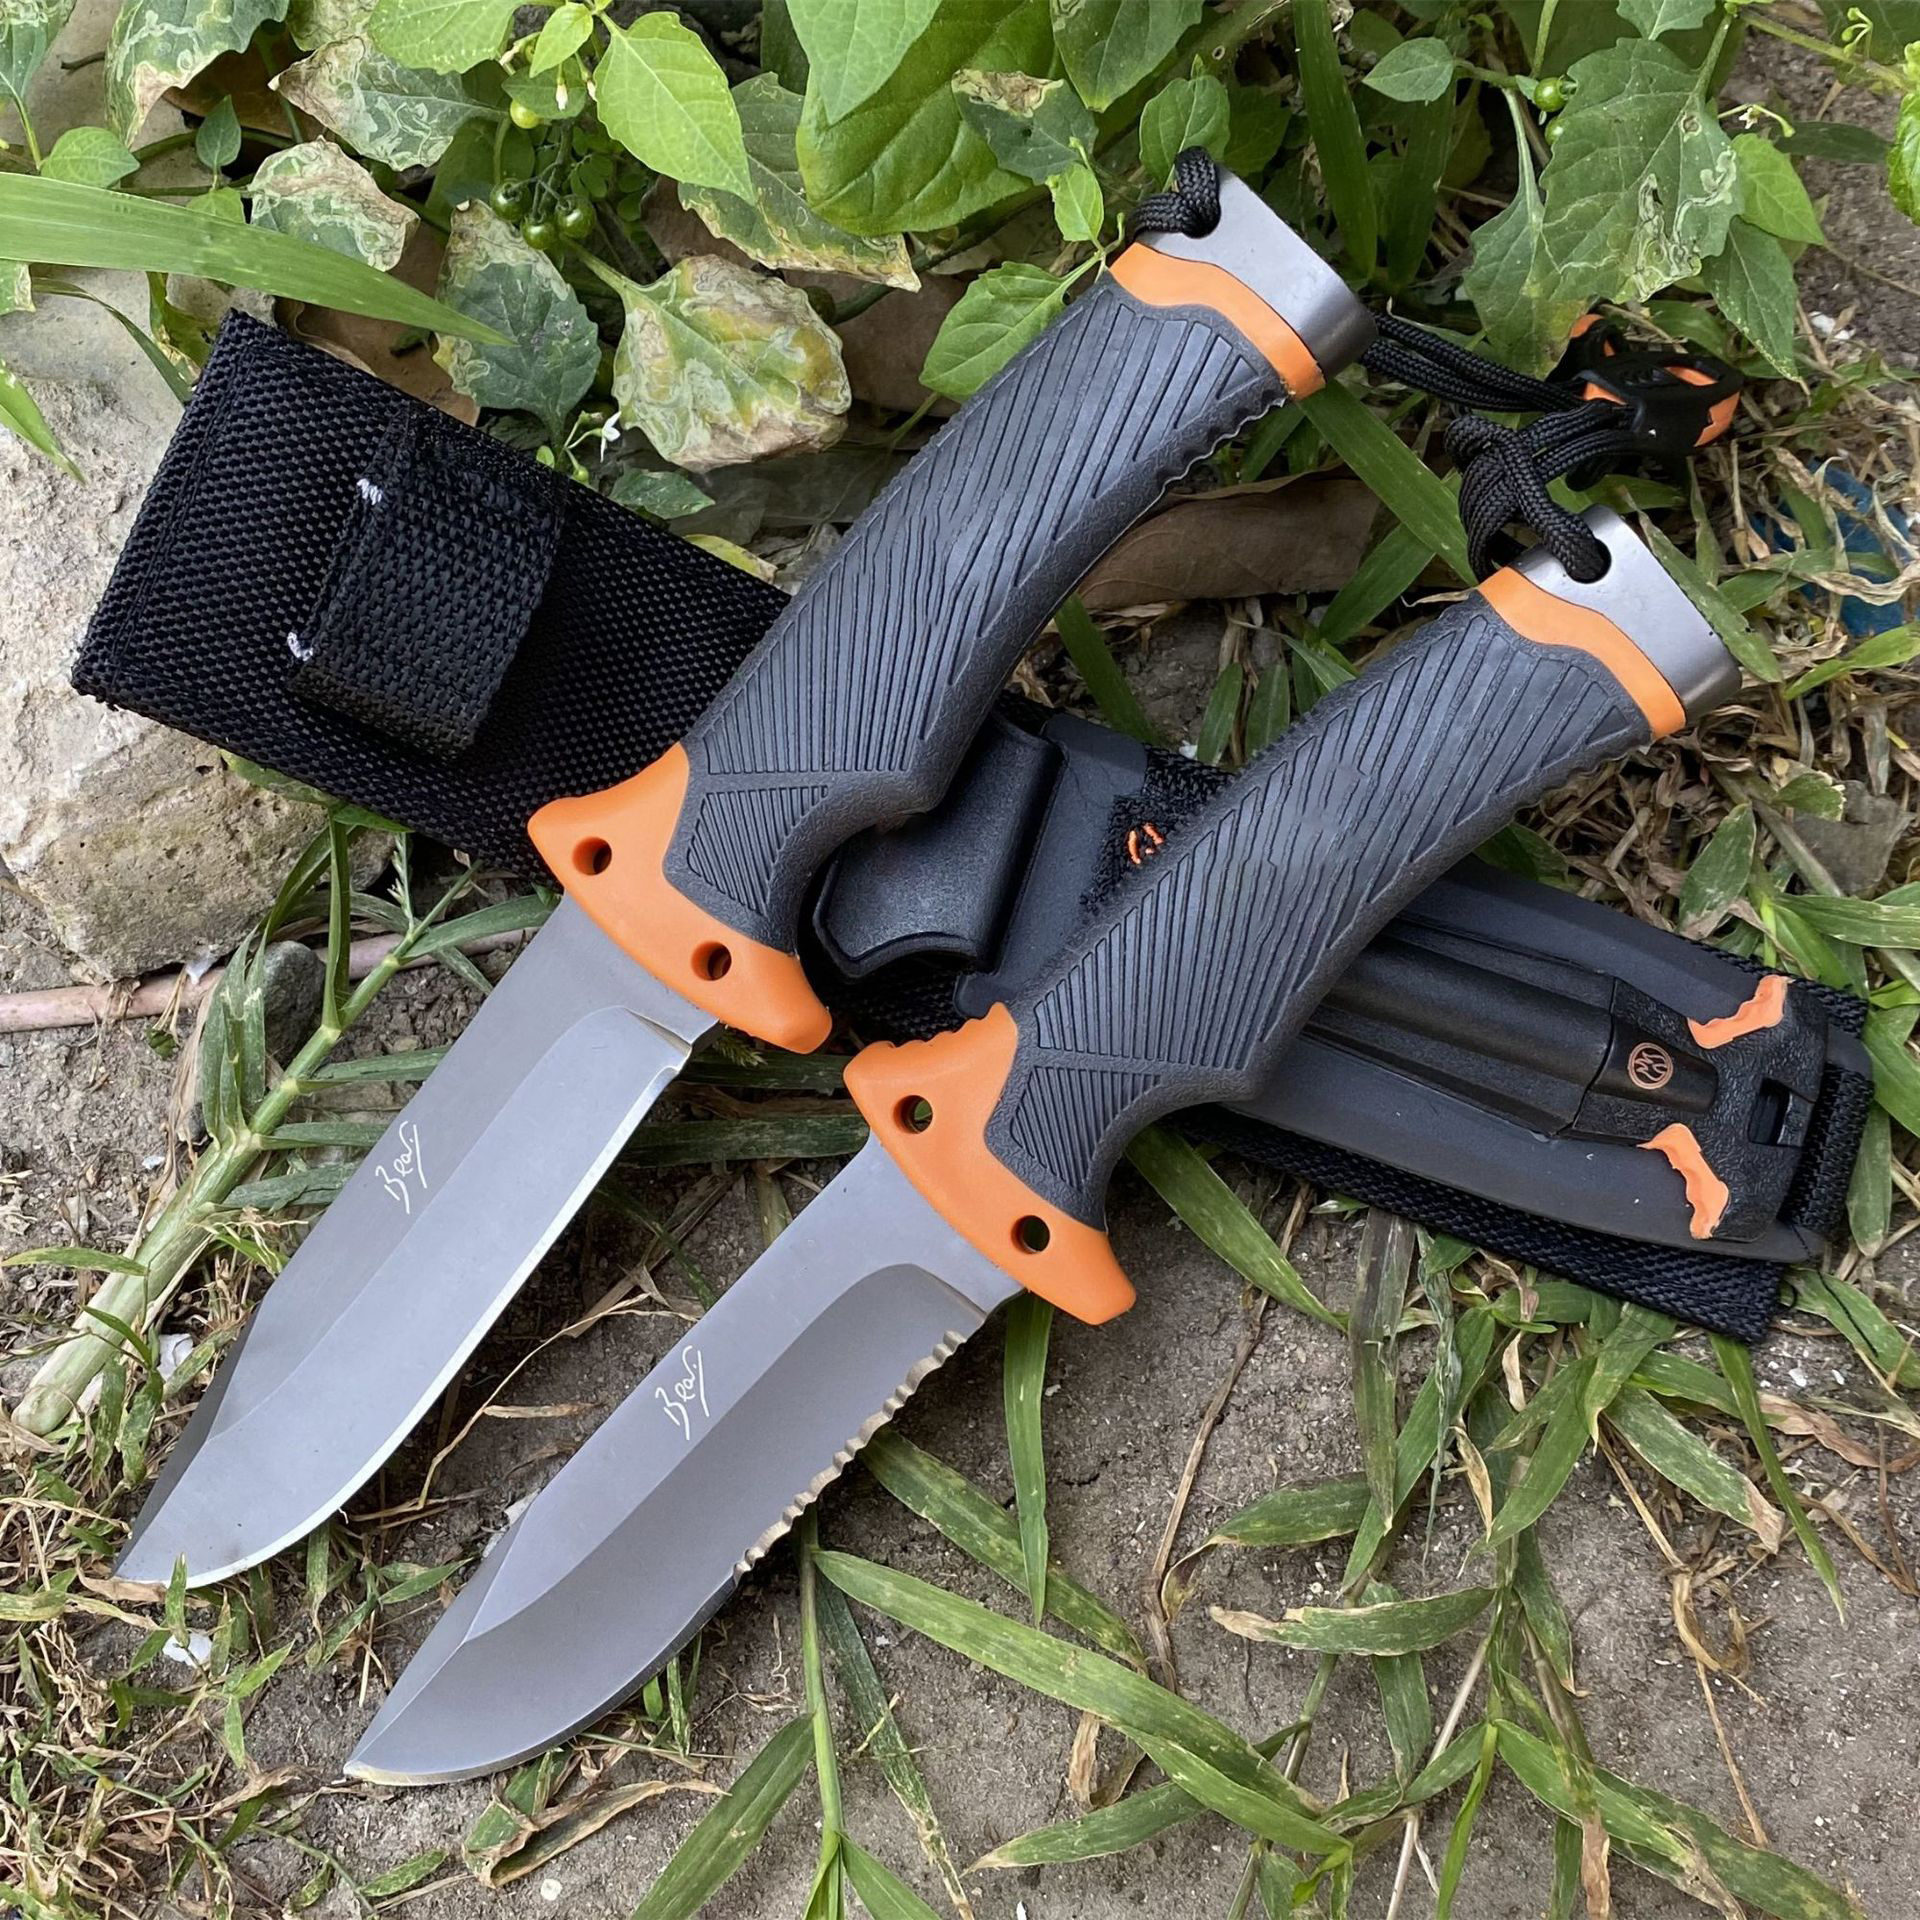 Firebird Ganzo 5cr15mov blade ABS Handle Fixed blade knife Survival knife Camping tool Hunting Knife tactical outdoor tool